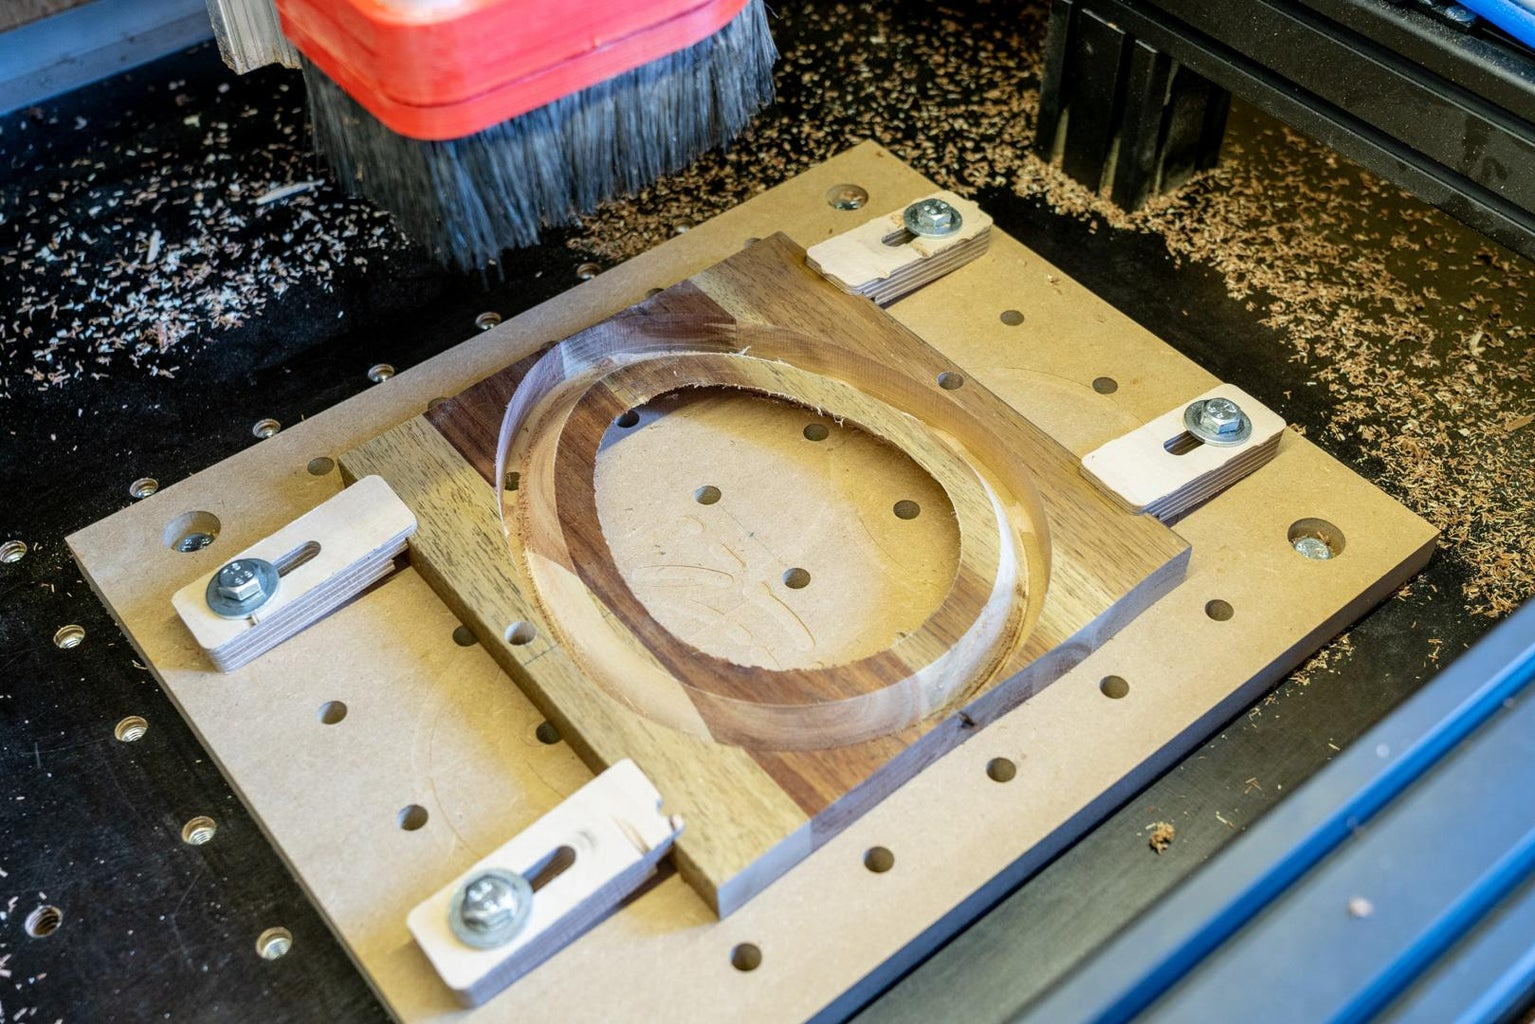 Machining of the Egg-slices